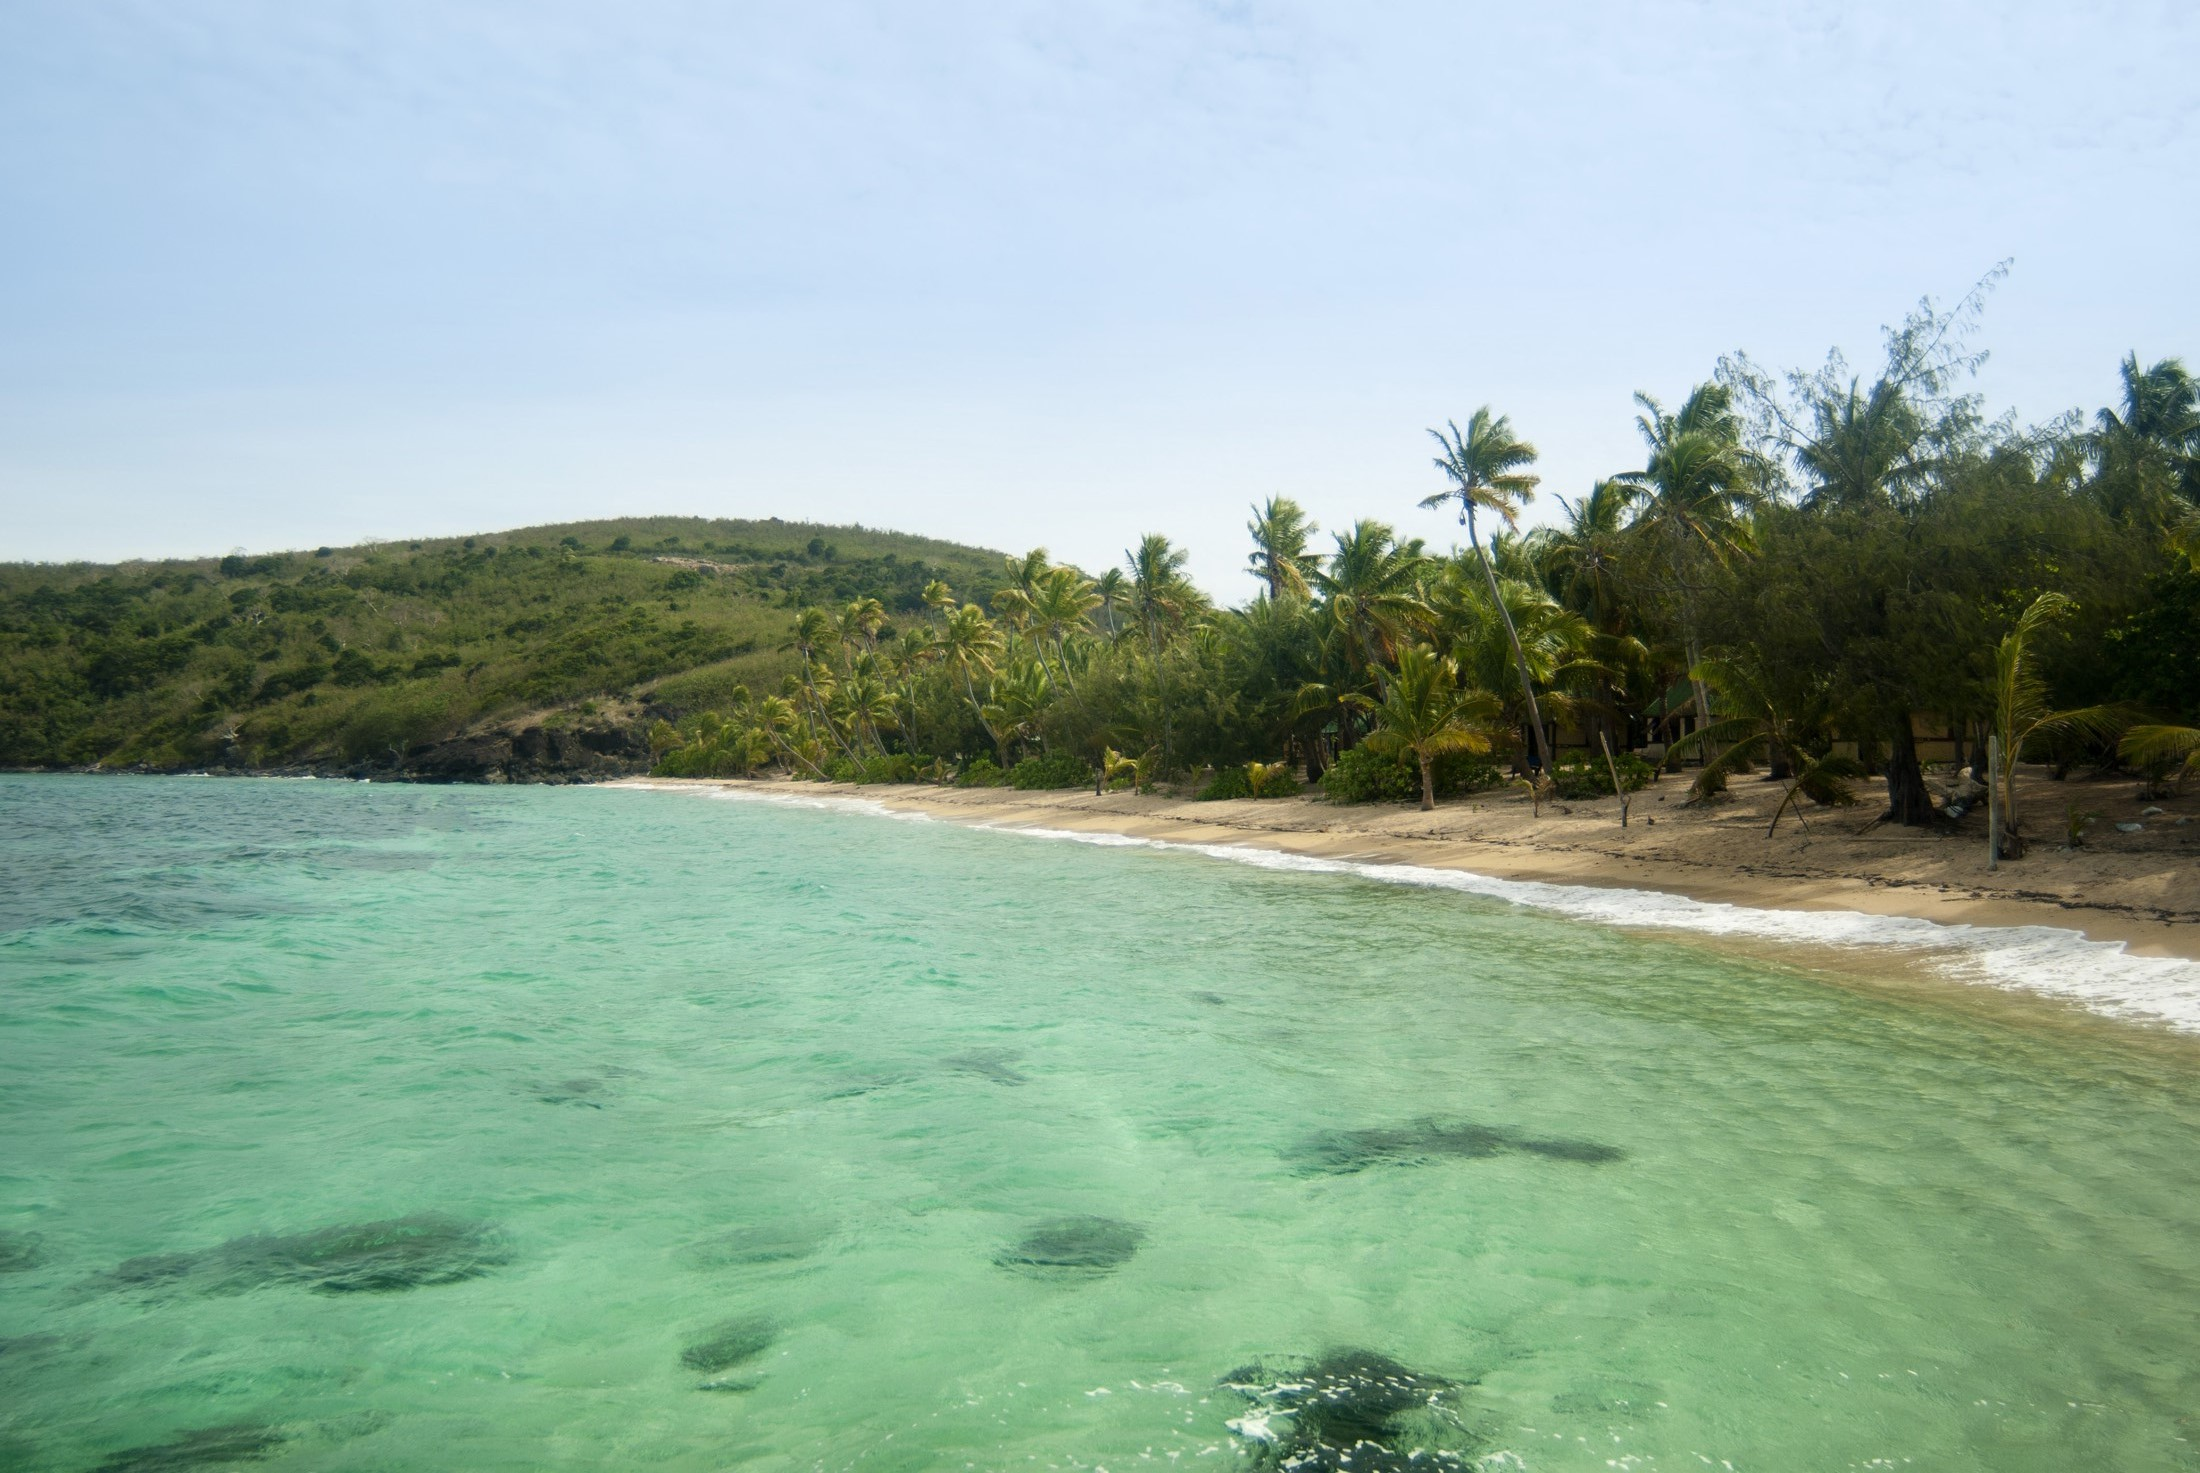 Beautiful clear water in a tropical bay and coastline with sandy beach and backdrop of palm trees